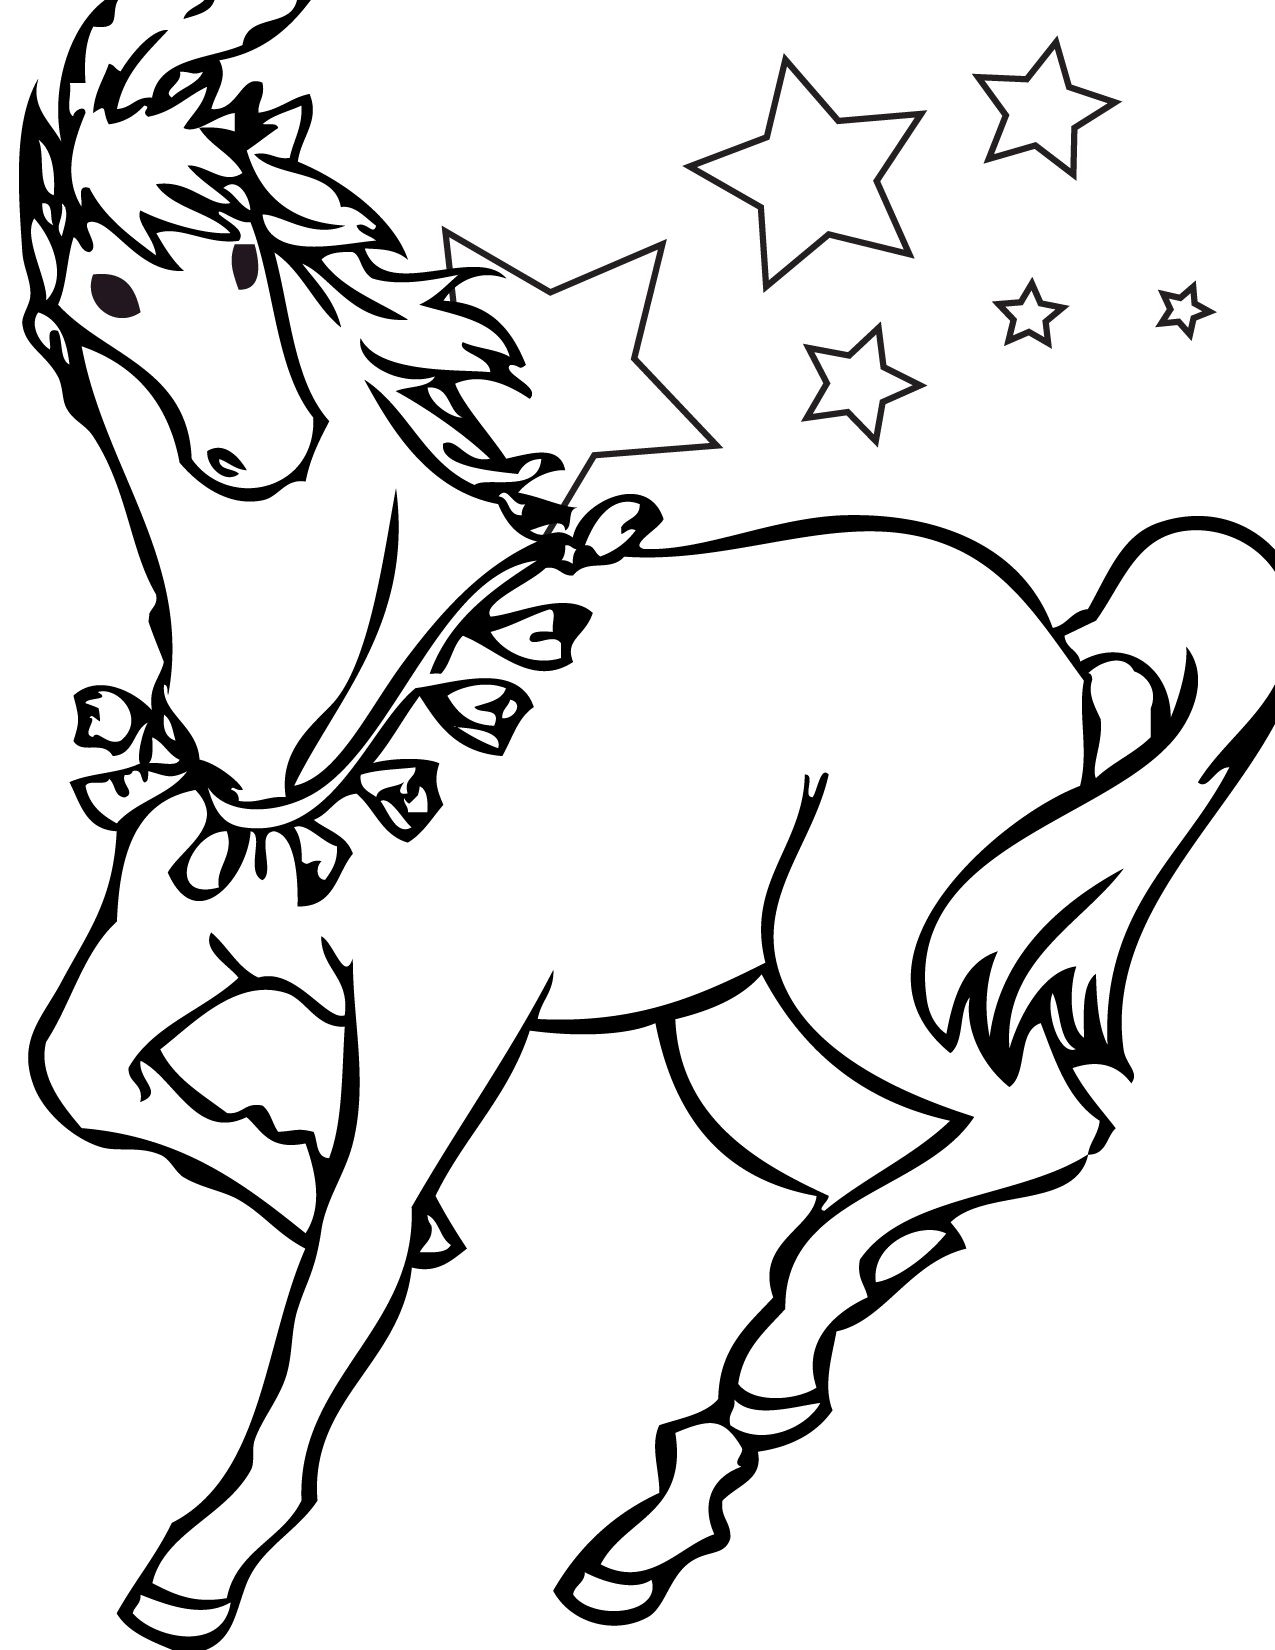 Free Printable Horse Coloring Pages For Kids | Little Ones | Horse - Free Printable Horse Coloring Pages